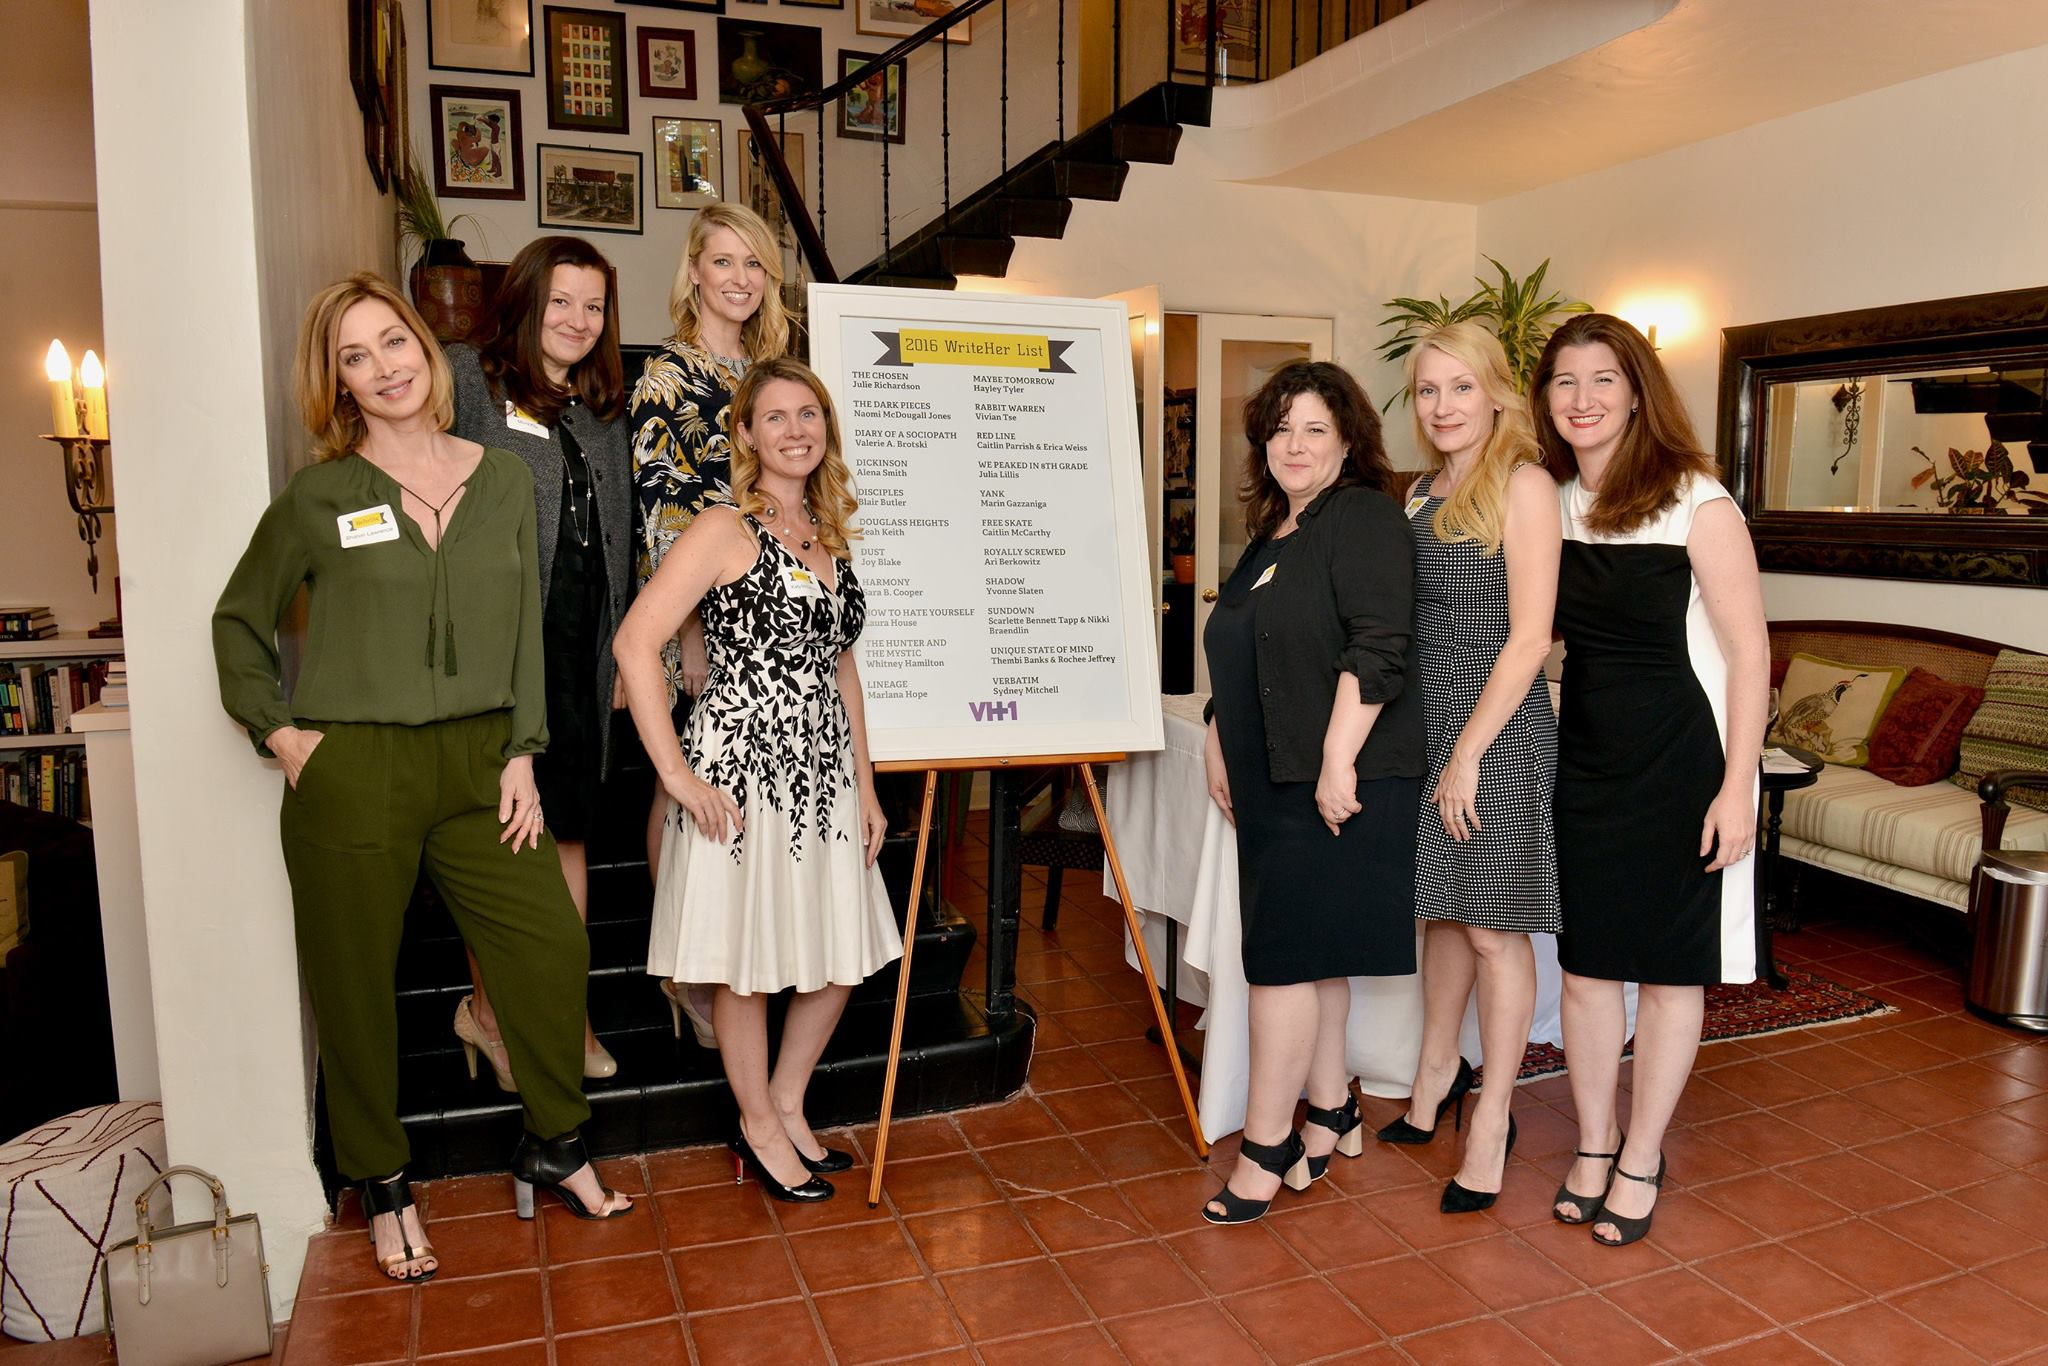 VH1 and WeForShe celebrate the 2016 WriteHer List on April 27, 2016 in Los Angeles, California. ©VH1/PictureGroup — with  Sharon Lawrence ,  Miura Smith Kite ,  Claudia Maittlen-Harris ,  Katy McCaffrey ,  Maggie Malina ,  Jenni Blong Livingston  and  AnnaLea Rawicz Arnold .